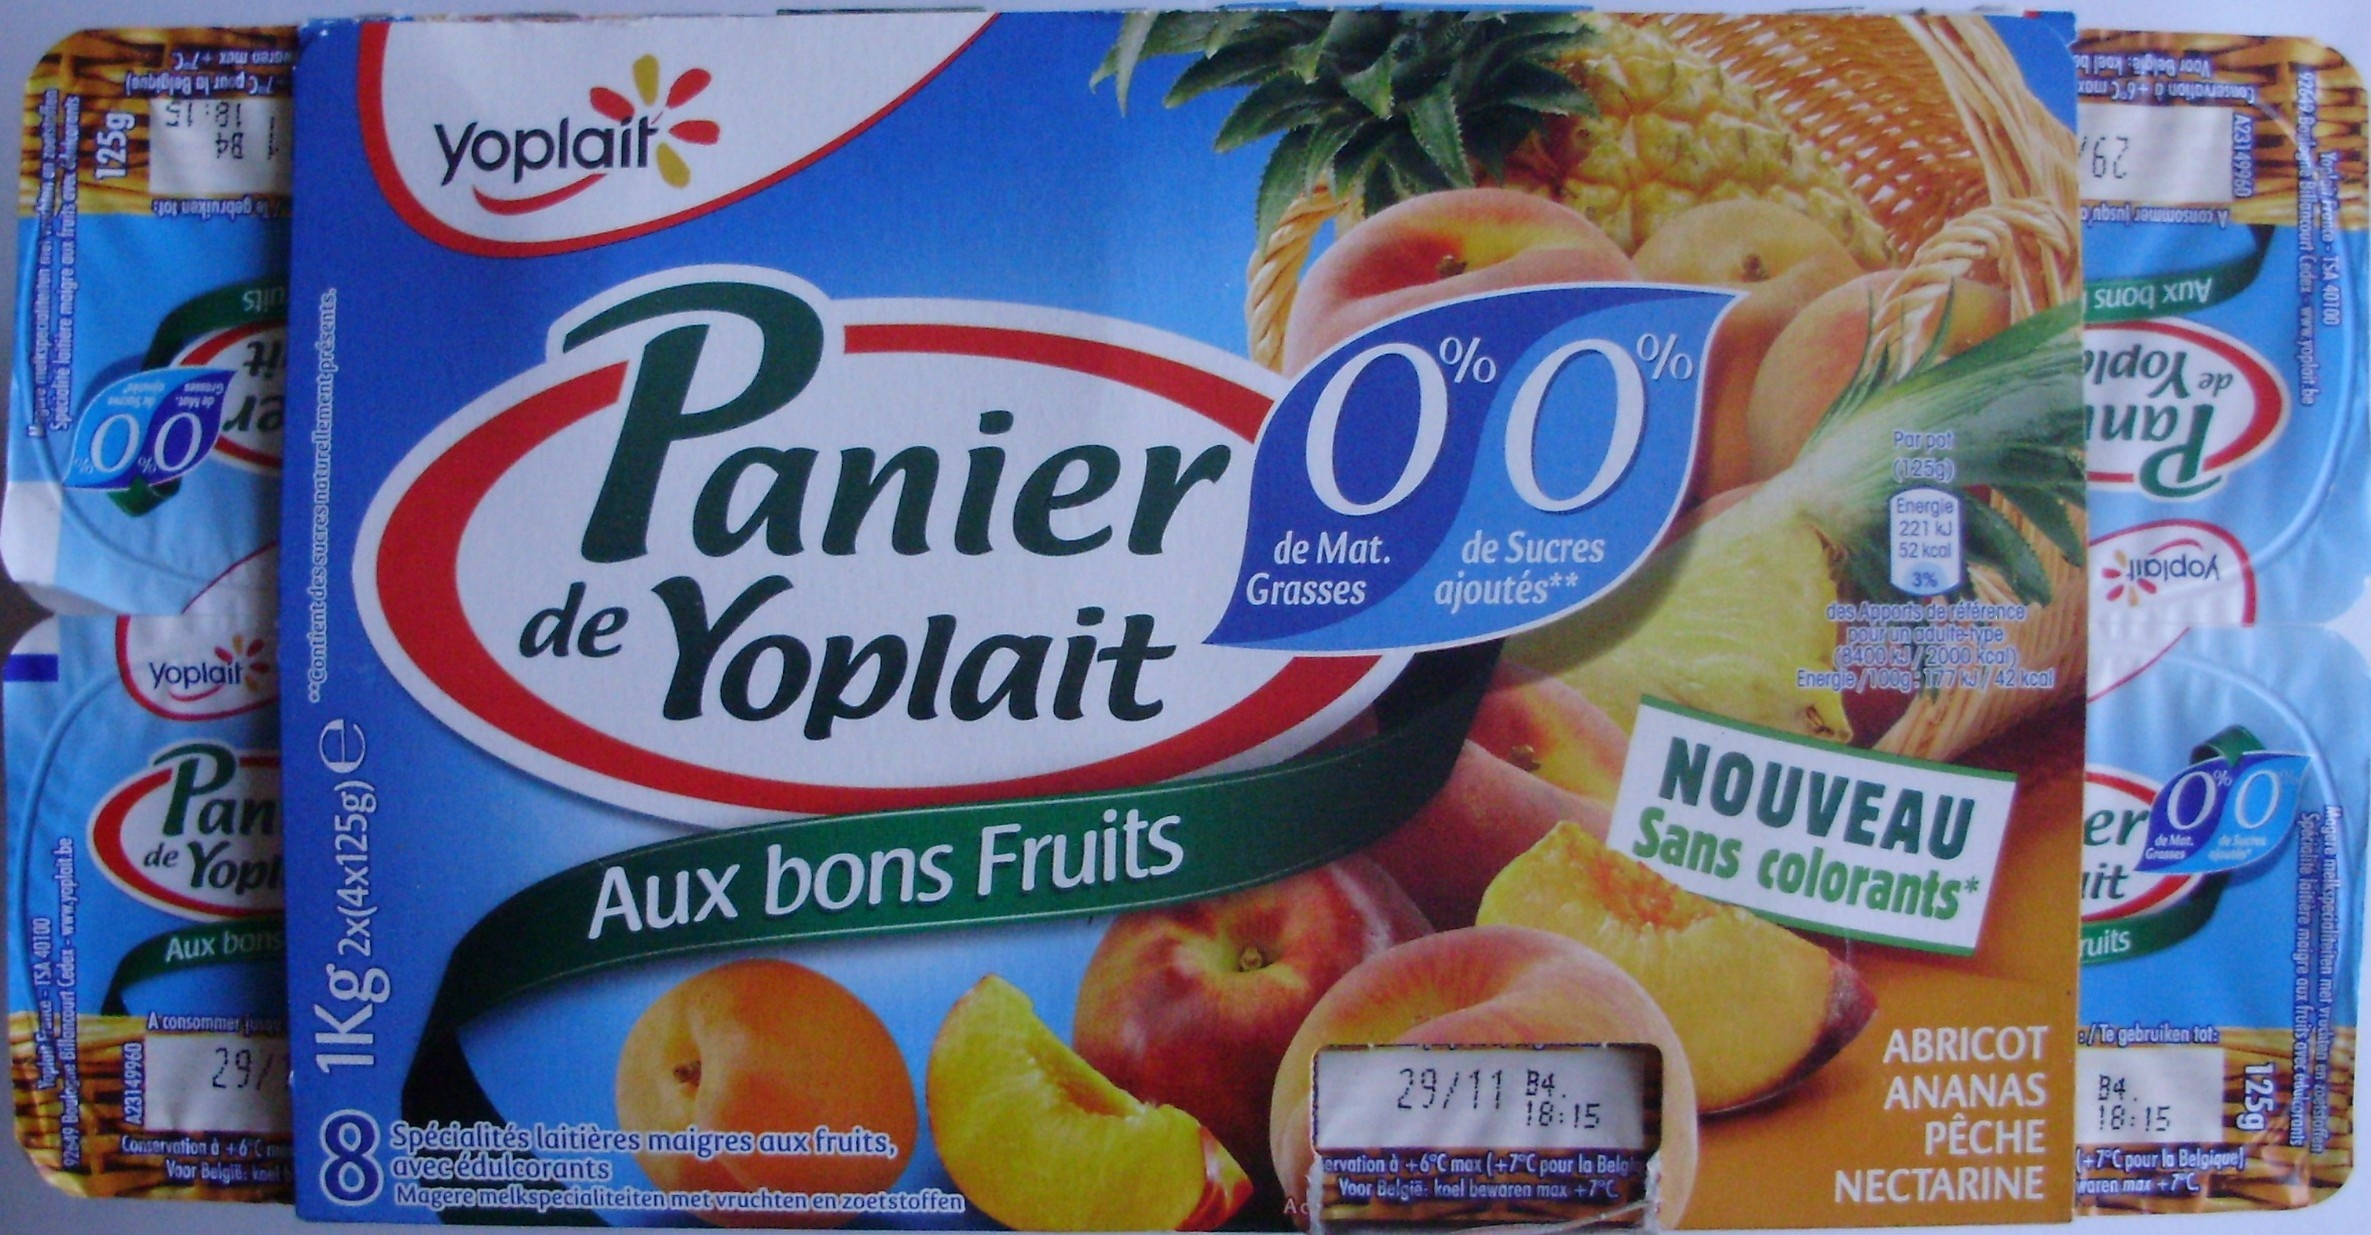 Orange Dreamsicle Cake also Say Oui To All New French Style Yogurt further Paniers De Yoplait 0 Mg 0 Sucres Ajoutes Abricot Ananas Peche Nectarine 8 Pots further 4834905567 likewise Food Label. on yoplait ingredients